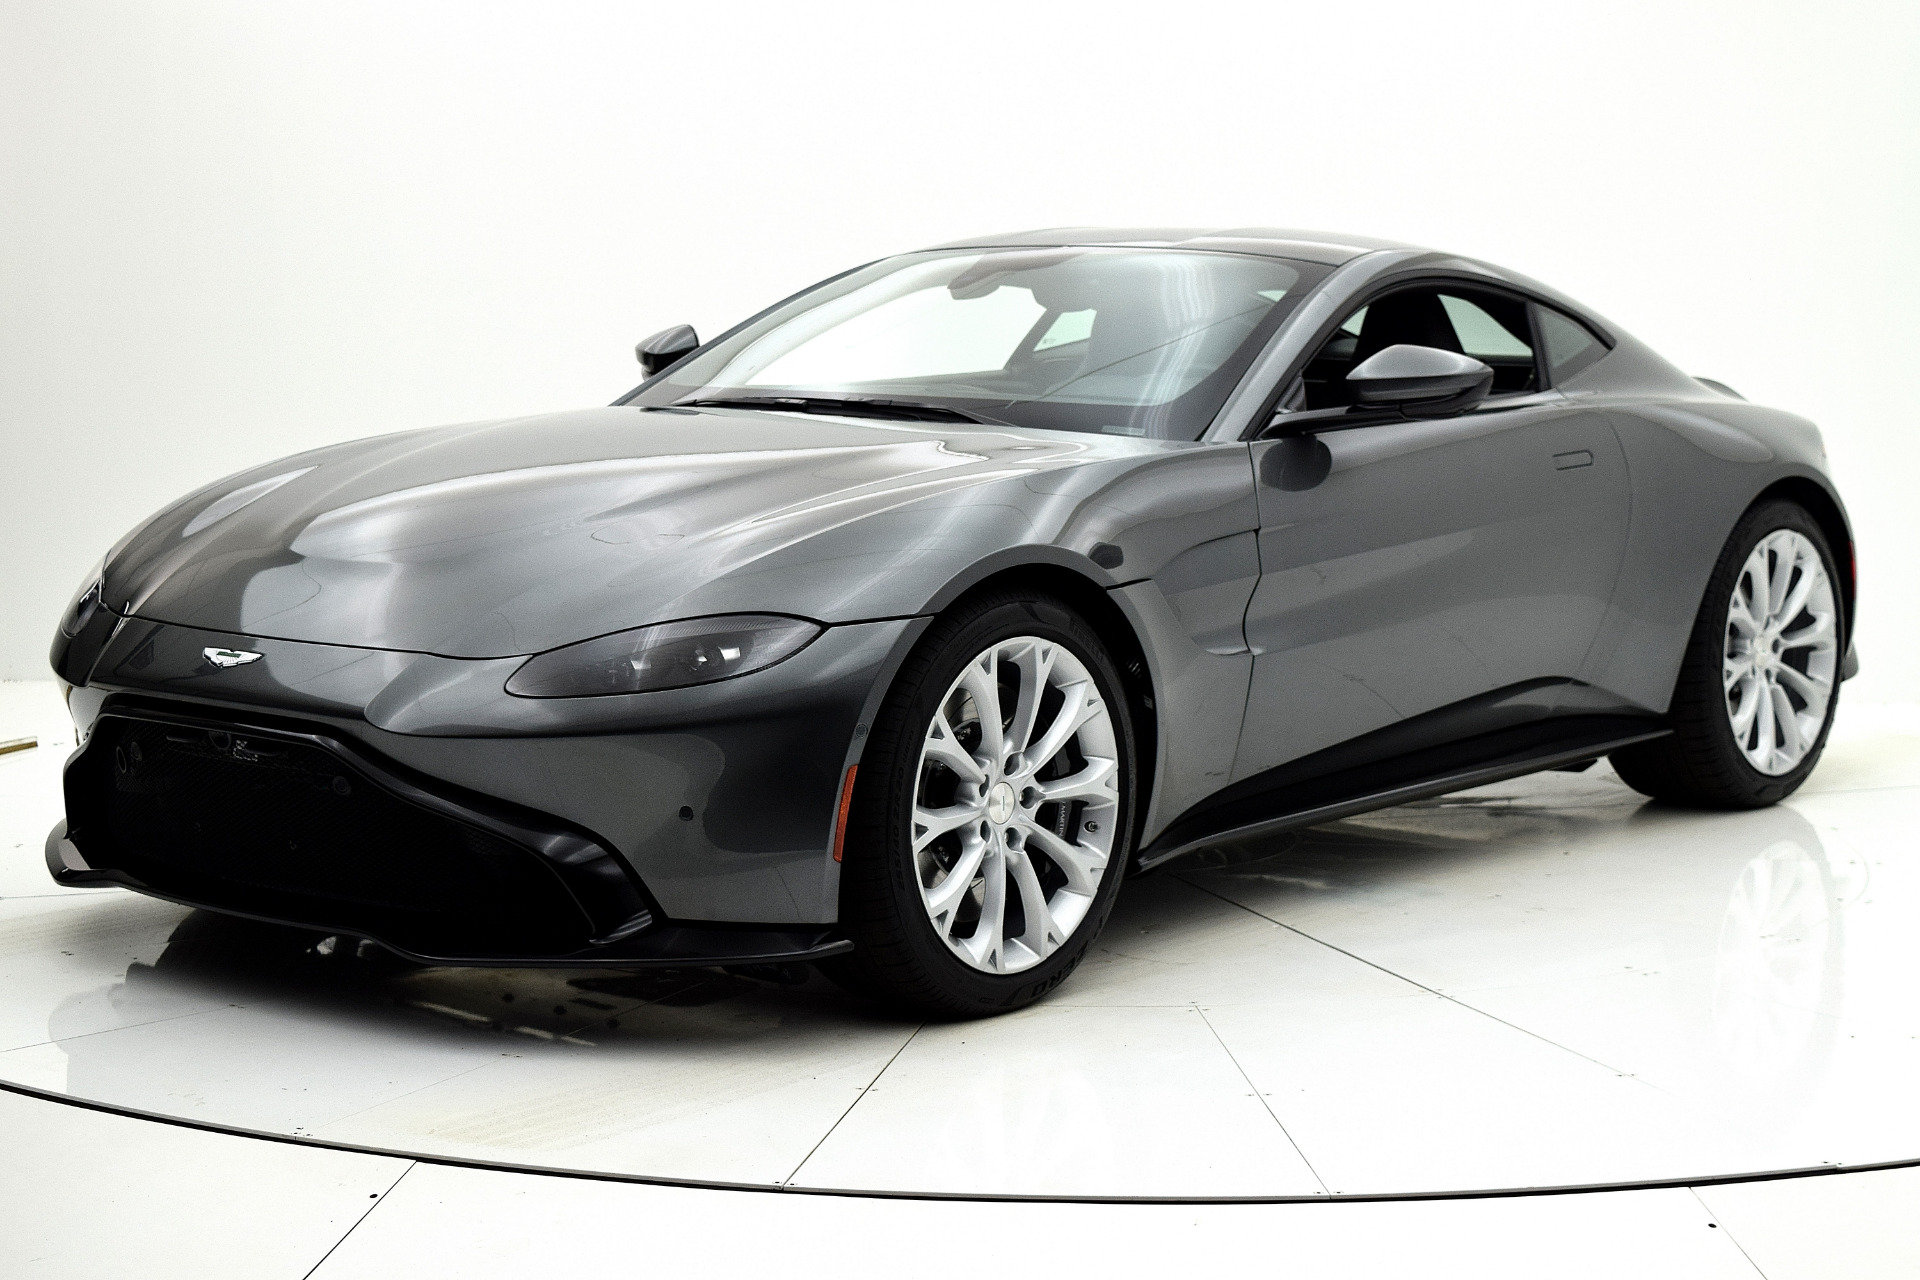 Aston Martin Vantage 2019 For Sale $184434 Stock Number 19A107